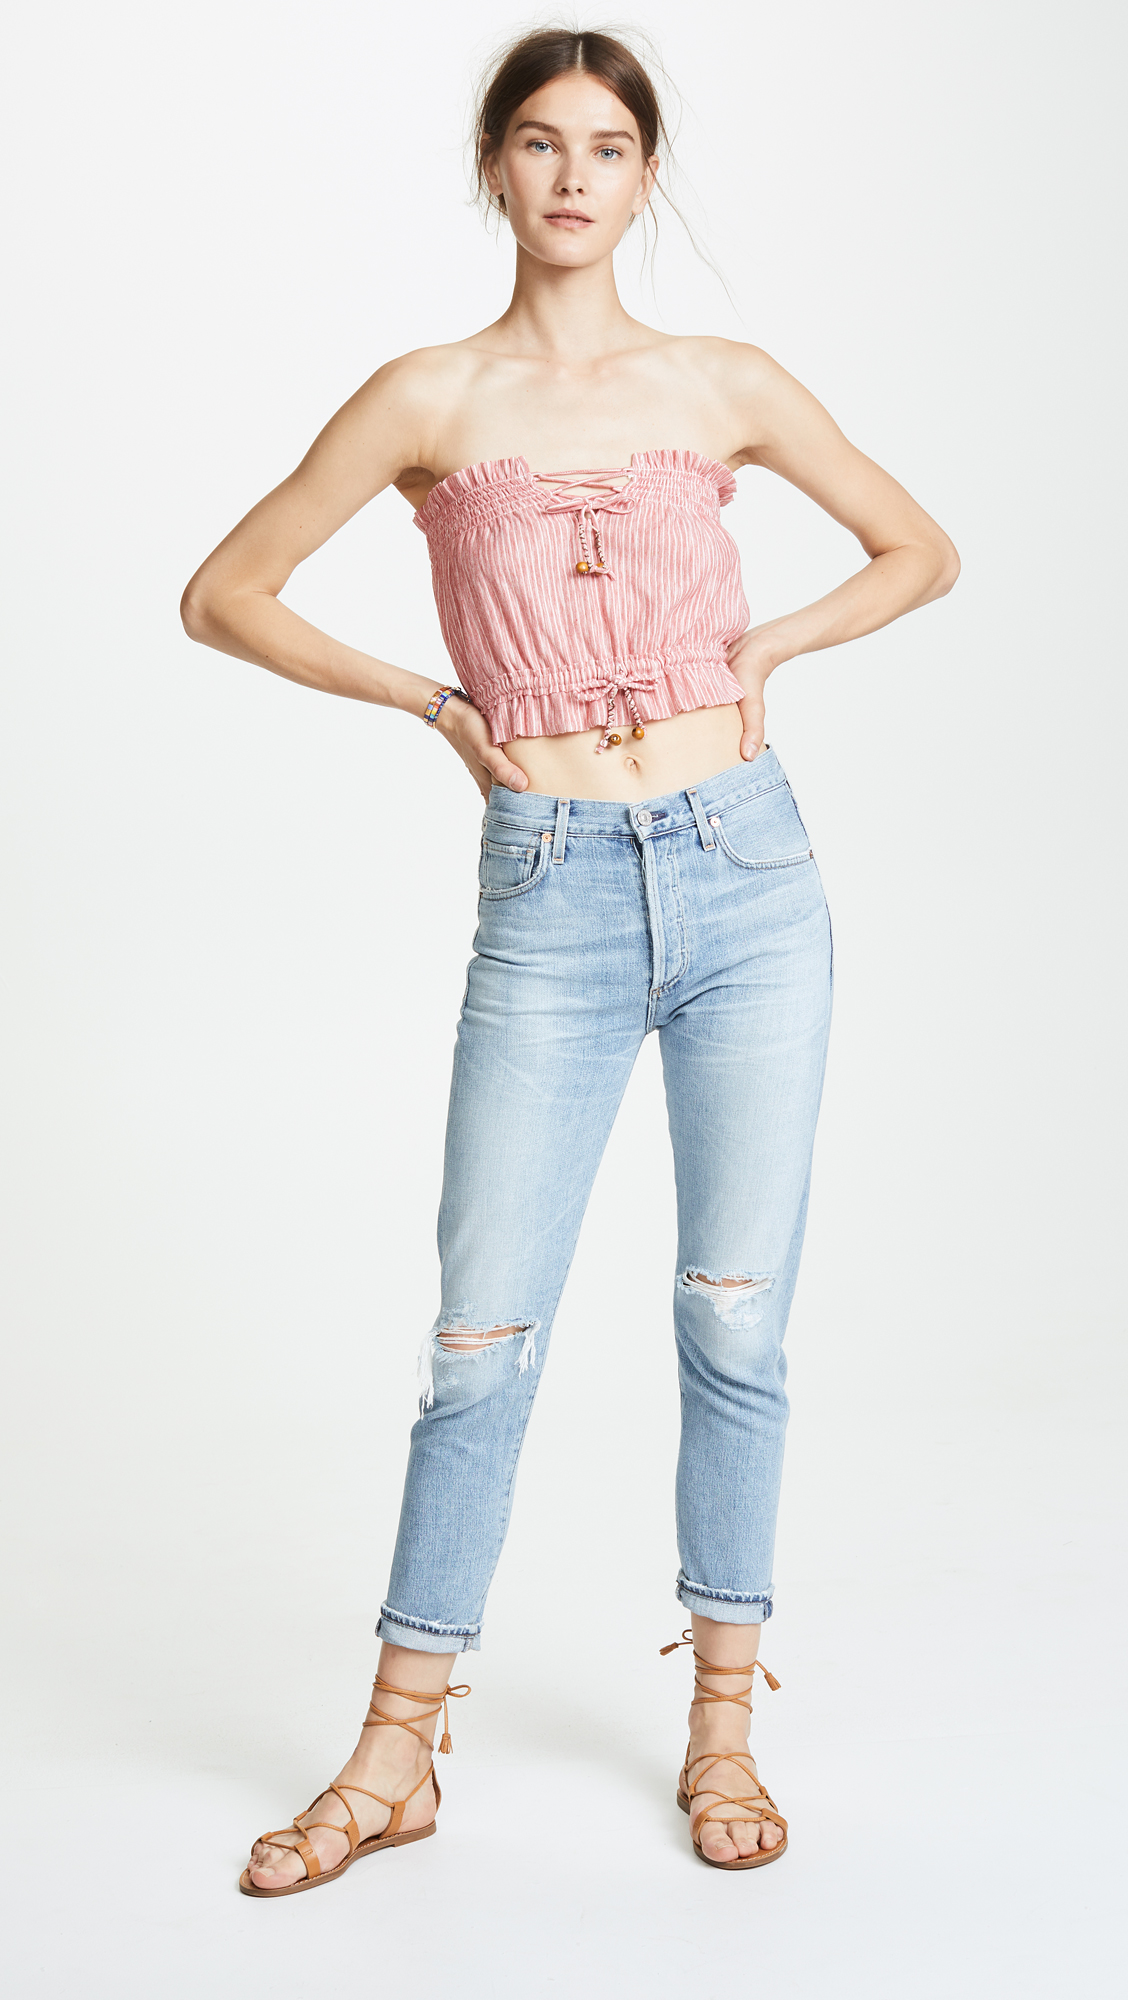 f69646c005 Free People Peppermint Tube Top